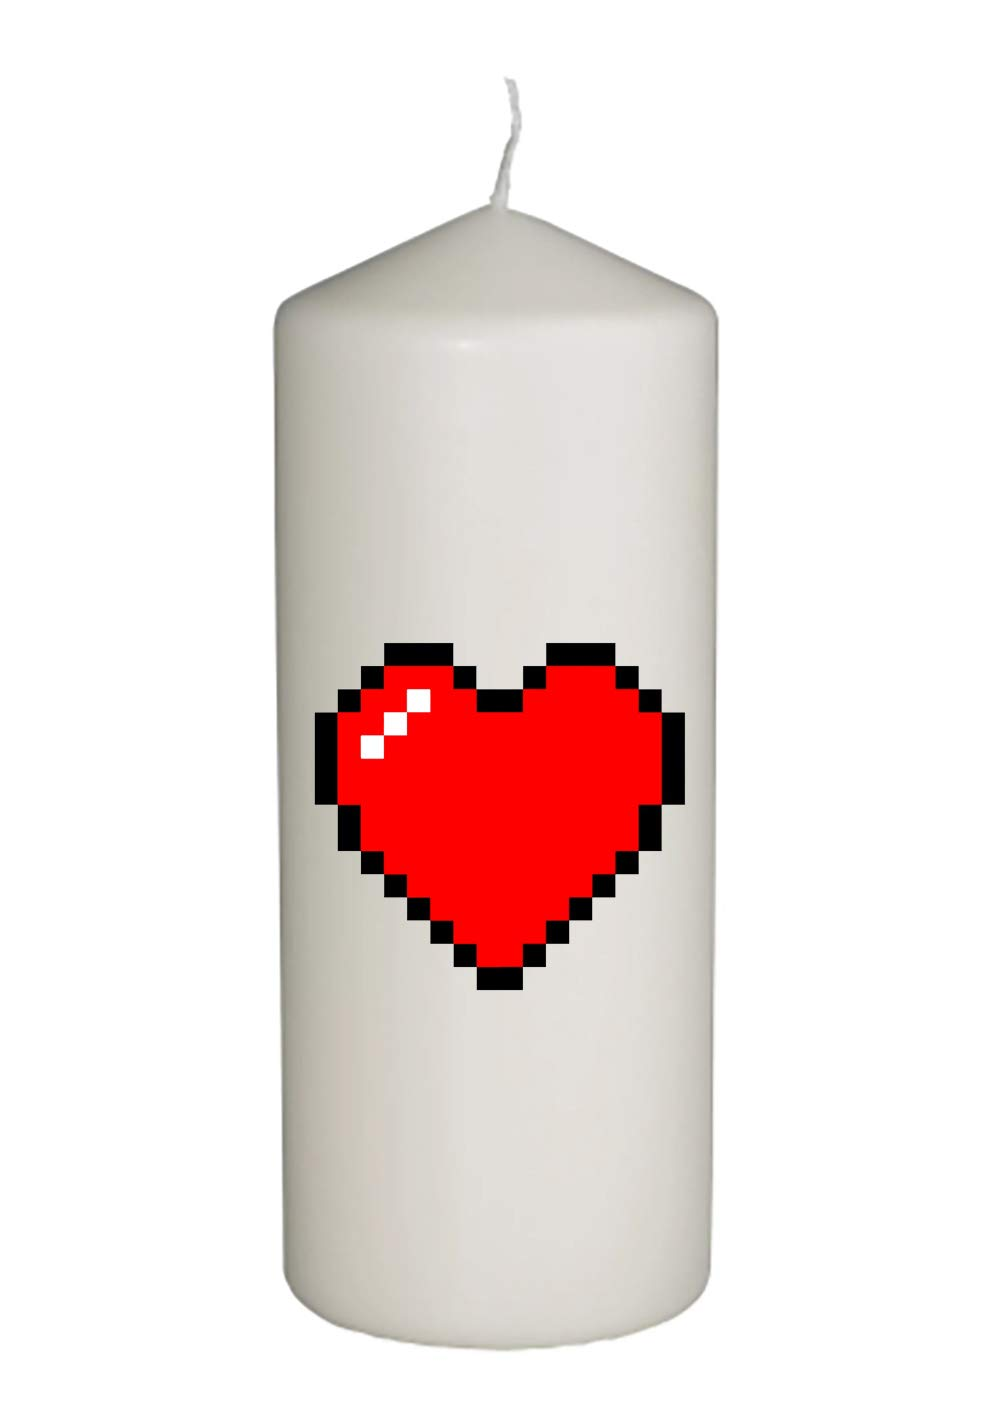 Hat Shark 8-Bit Heart Video Game Thick White in Full Color Unity Candle - Wedding, Baptism, Funeral, Special Event Decoration (6 inches Tall)